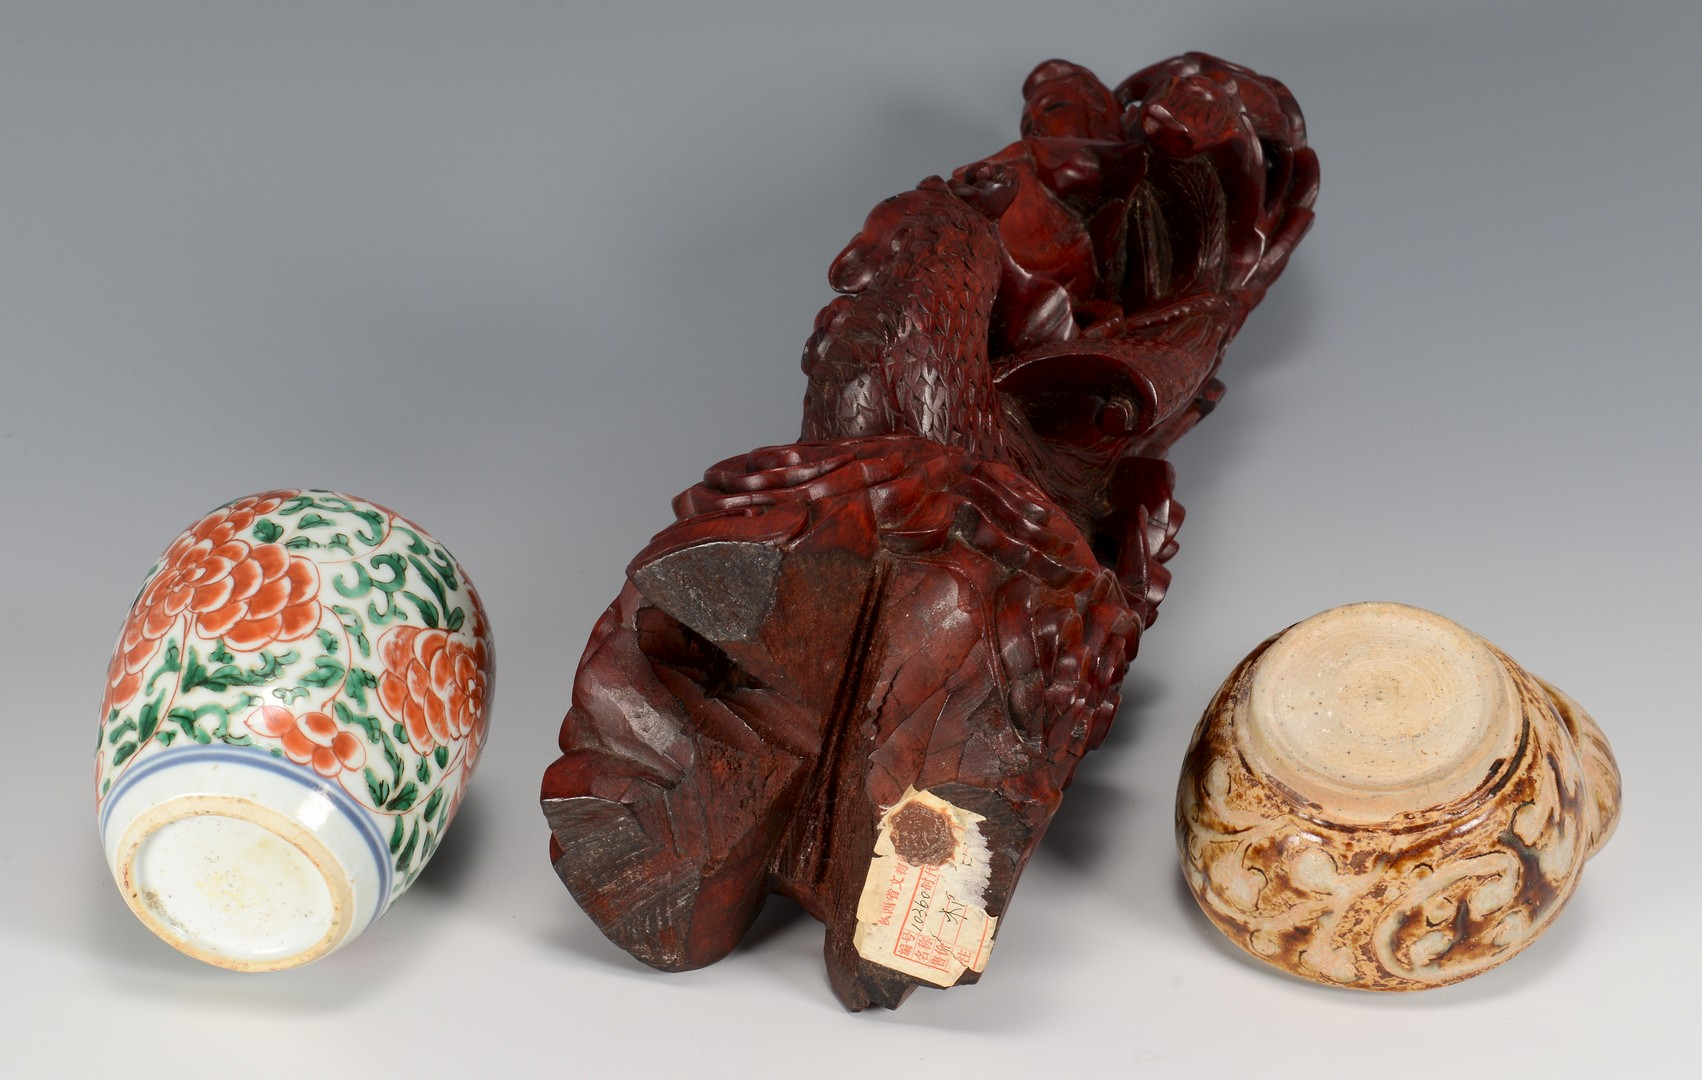 Lot 3832430: 5 Asian Decorative Items 16th-20th c.